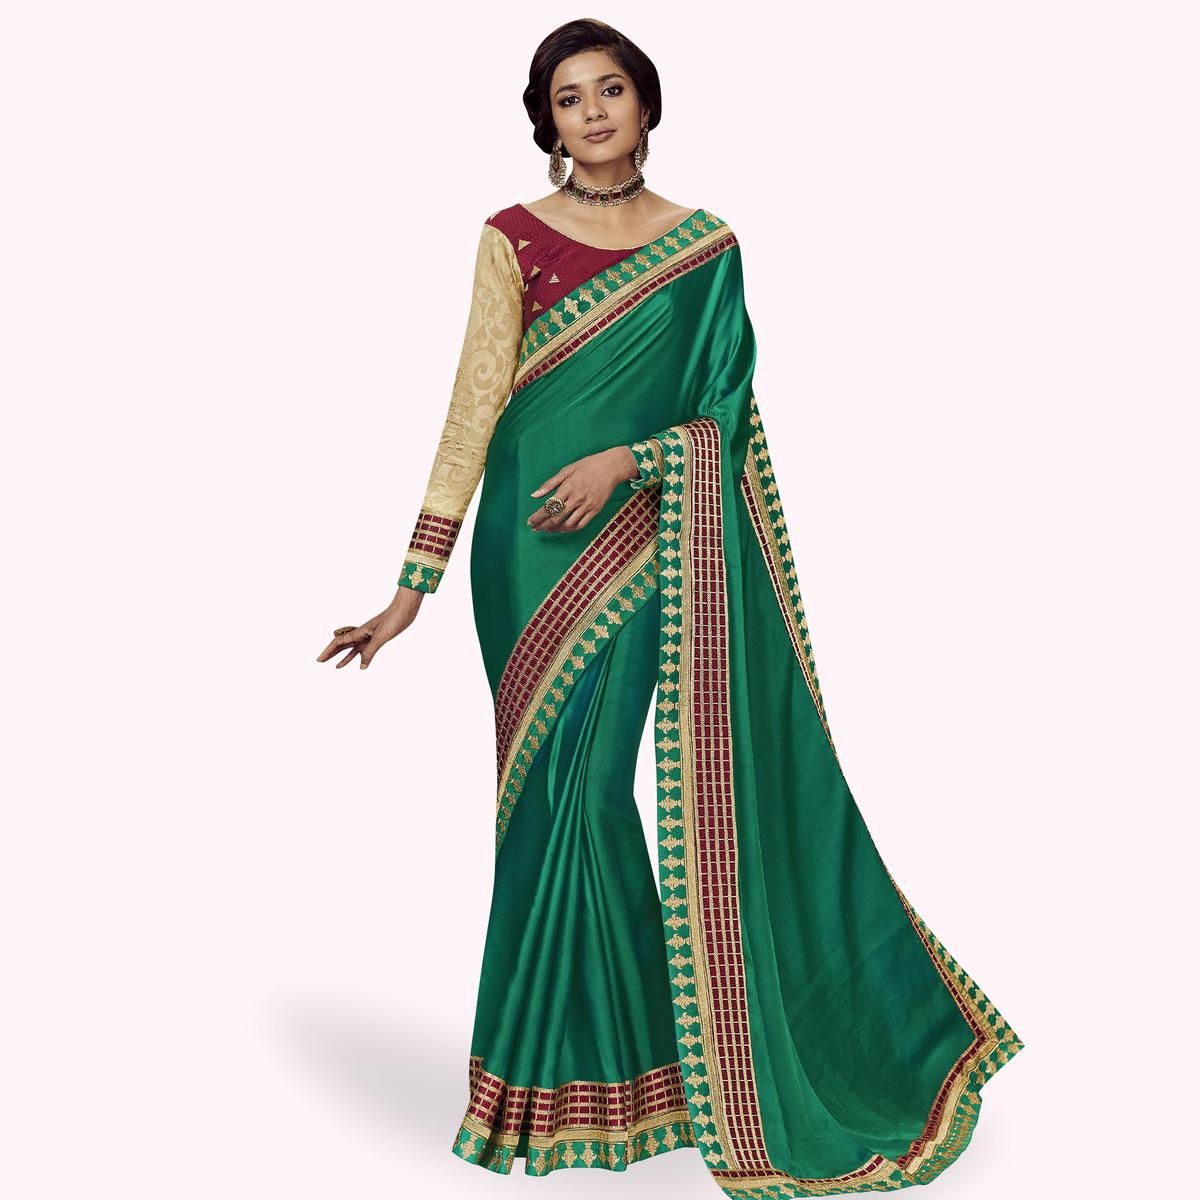 Exceptional Turquoise Green Colored Partywear Embroidered Satin Silk Saree